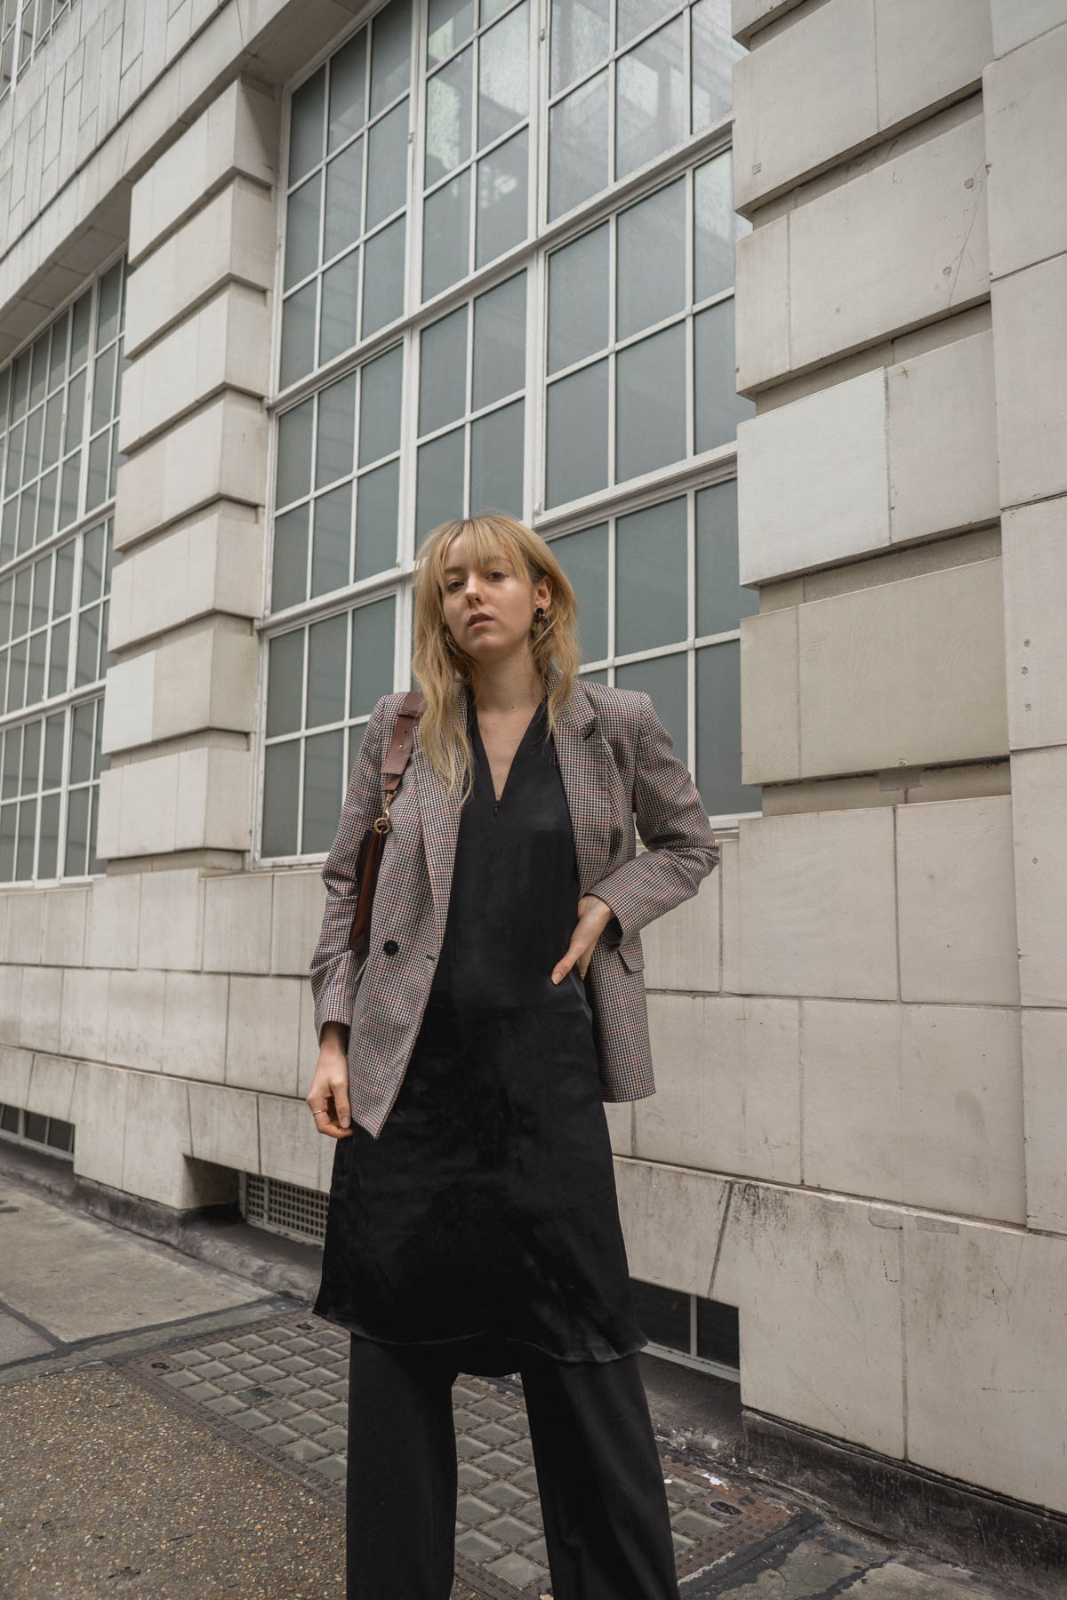 Outfit: Layering Satin Dress and Blazer